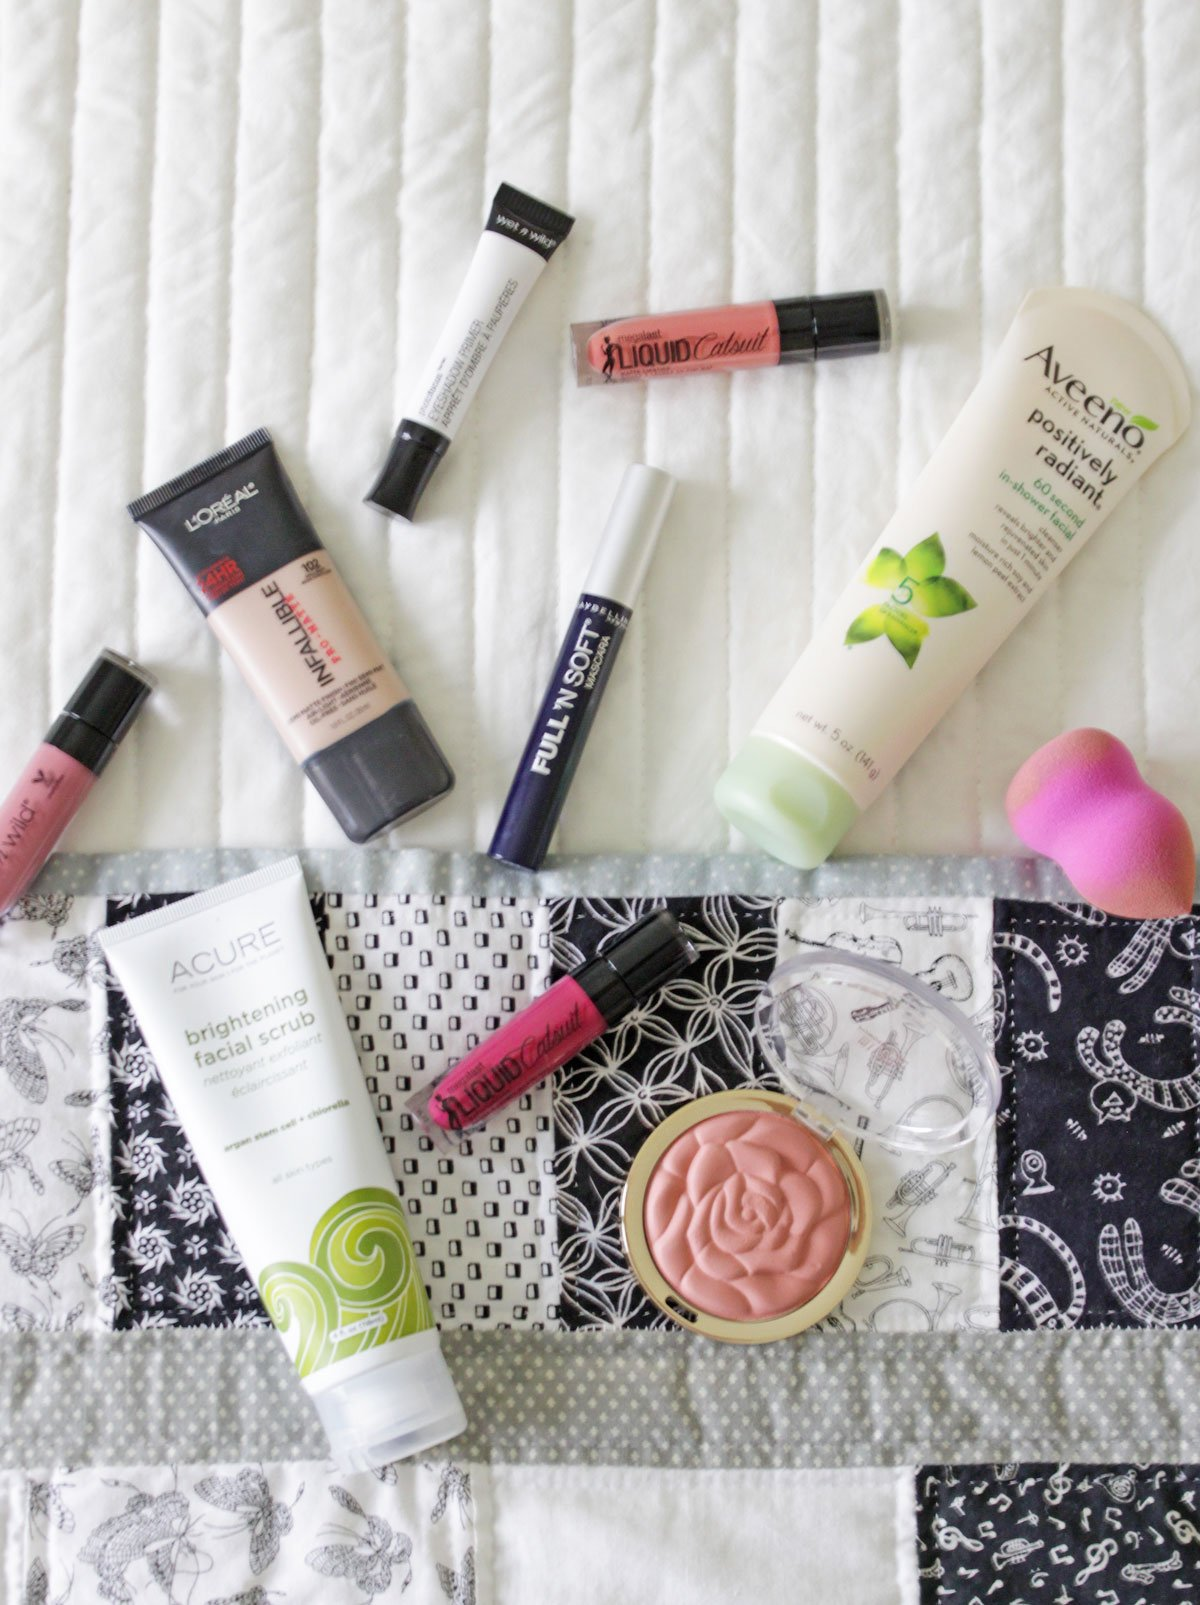 New Drugstore Beauty Buys